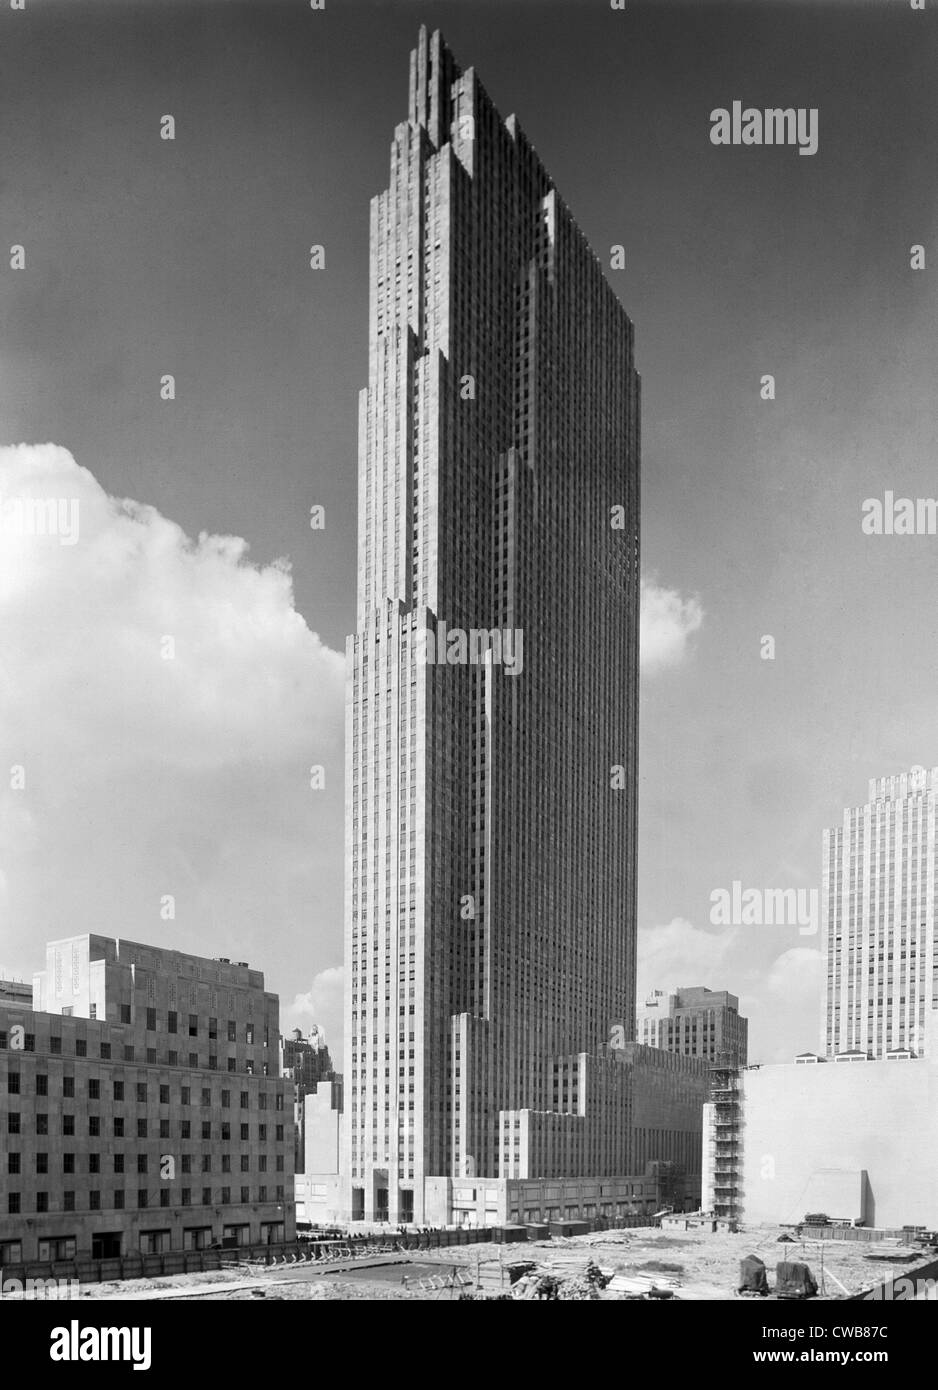 New York City, Rockefeller Center und RCA Building. Foto von Samuel H. Gottscho, 1933. Stockbild